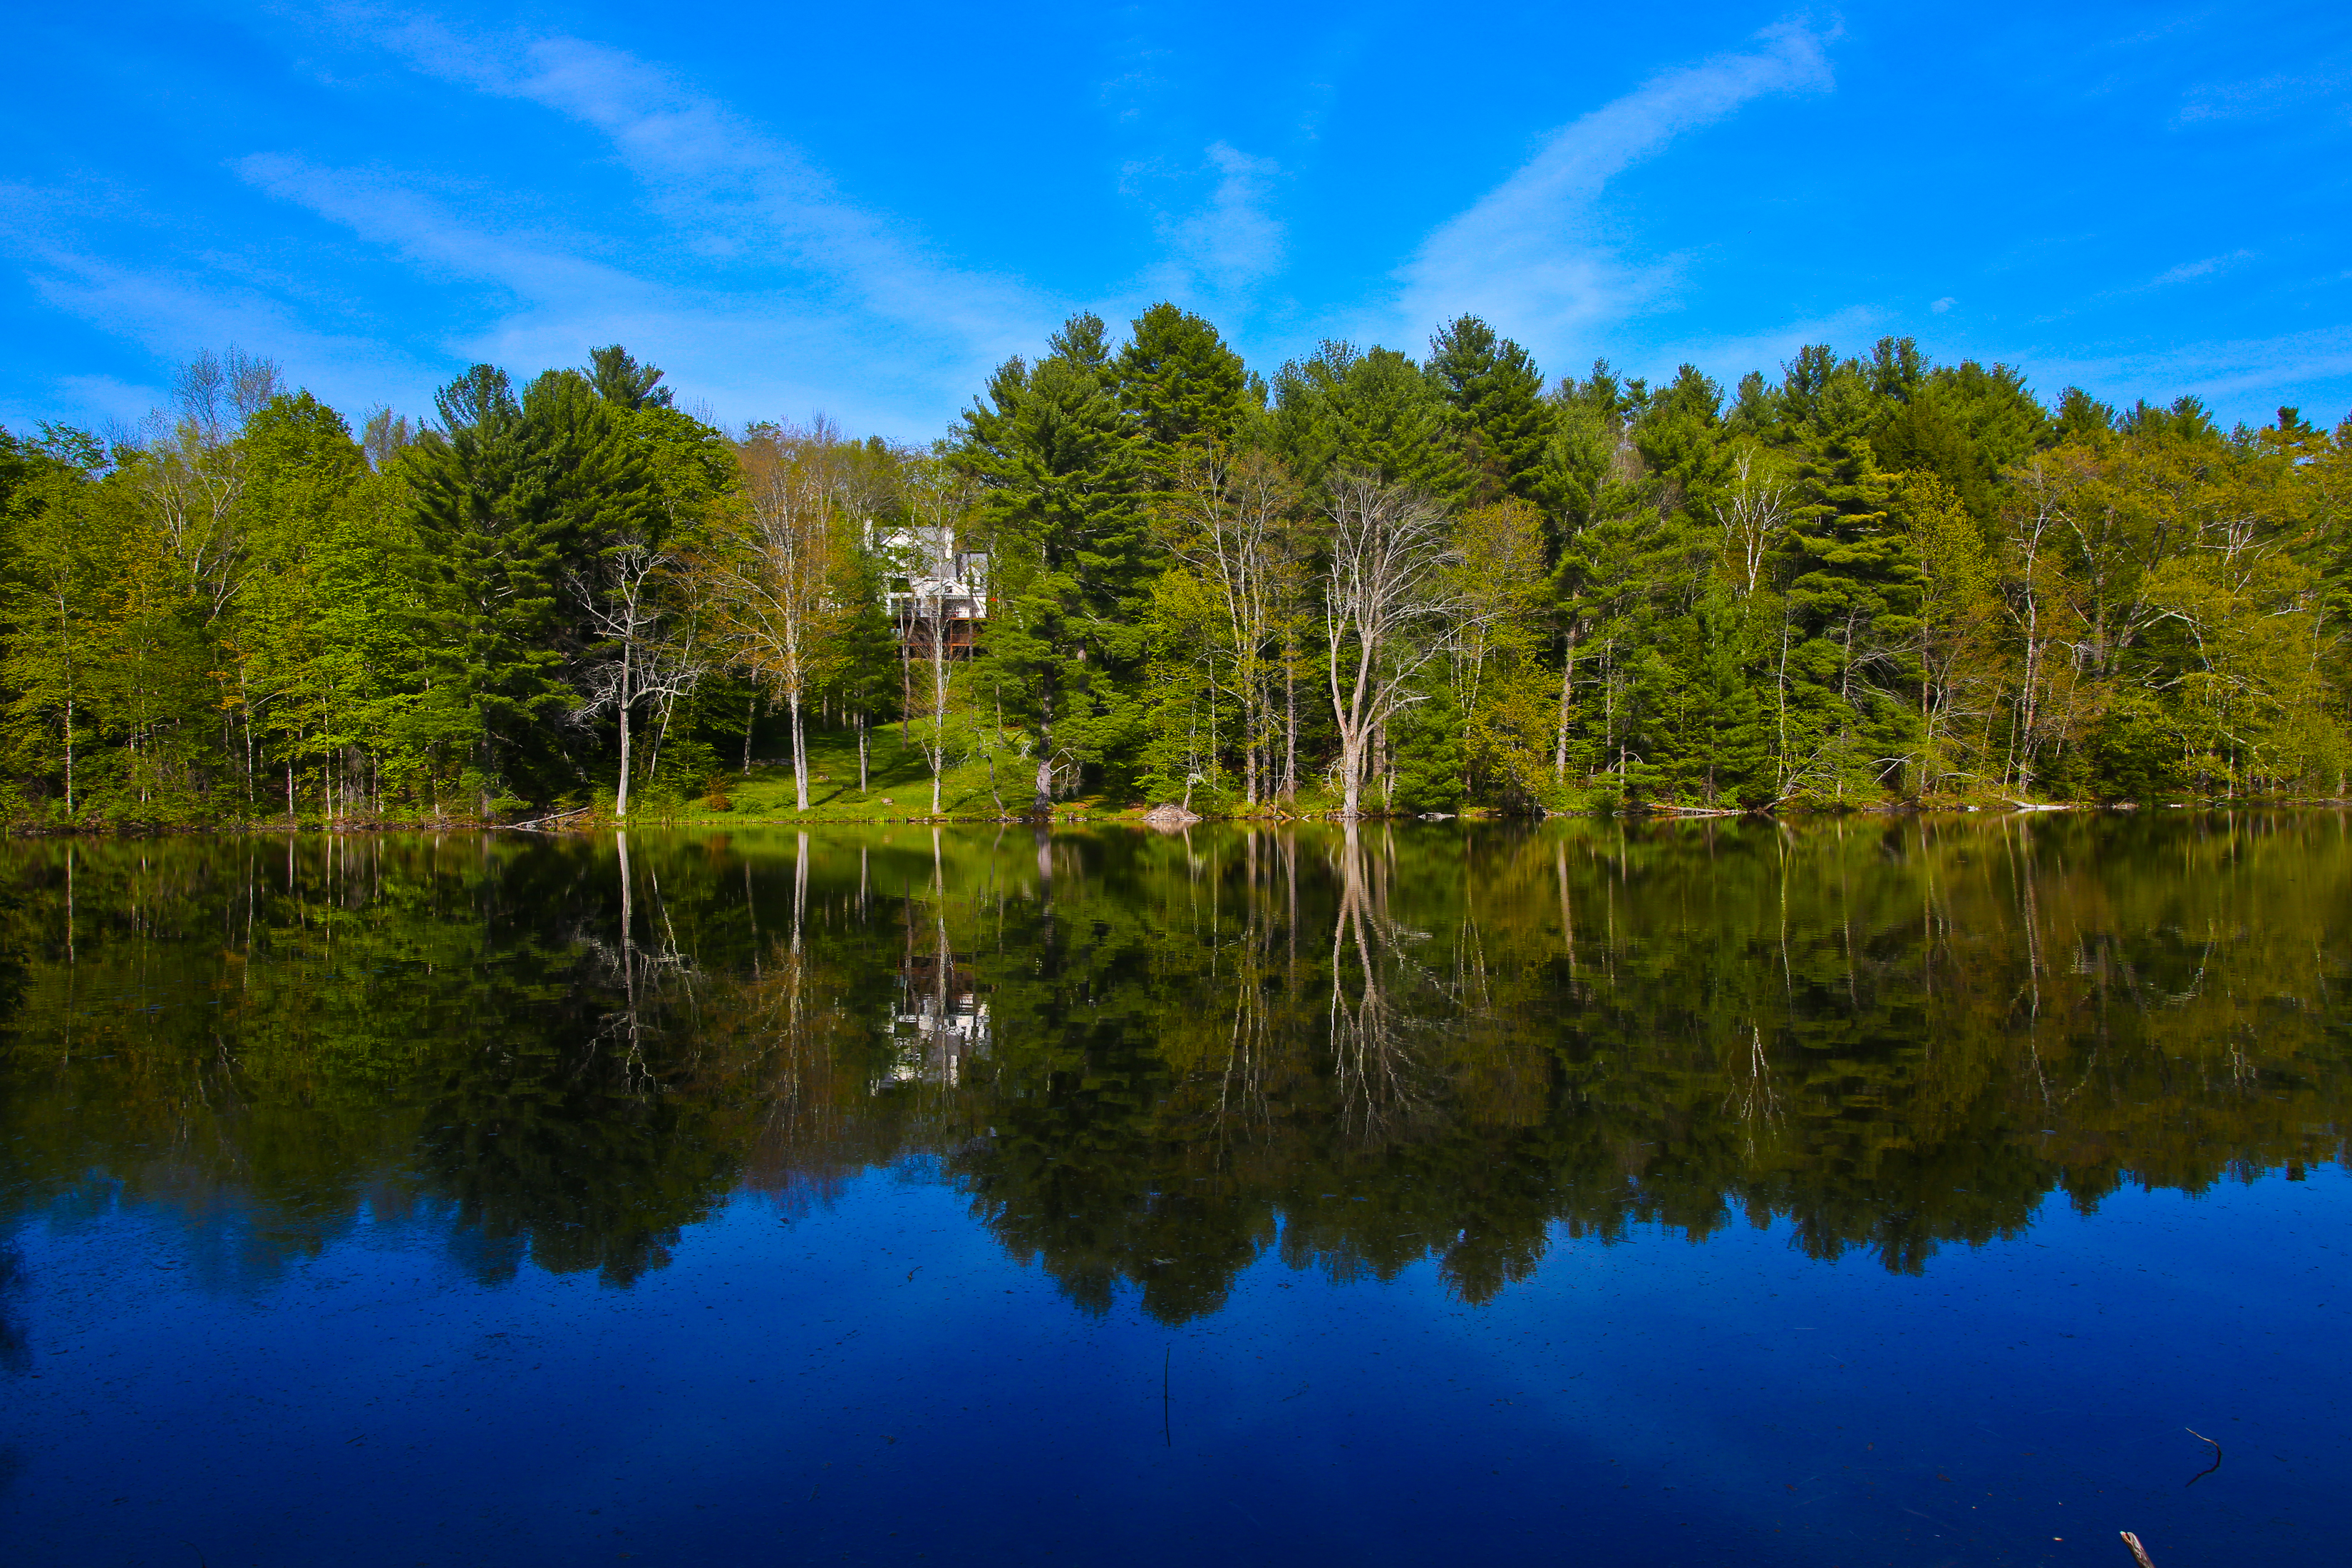 Single Family Home for Sale at 47 Acre Country Oasis with 3 Acre Pond, Pool & Hiking & XC Ski Trails 238 Rossiter Rd Richmond, Massachusetts 01254 United States